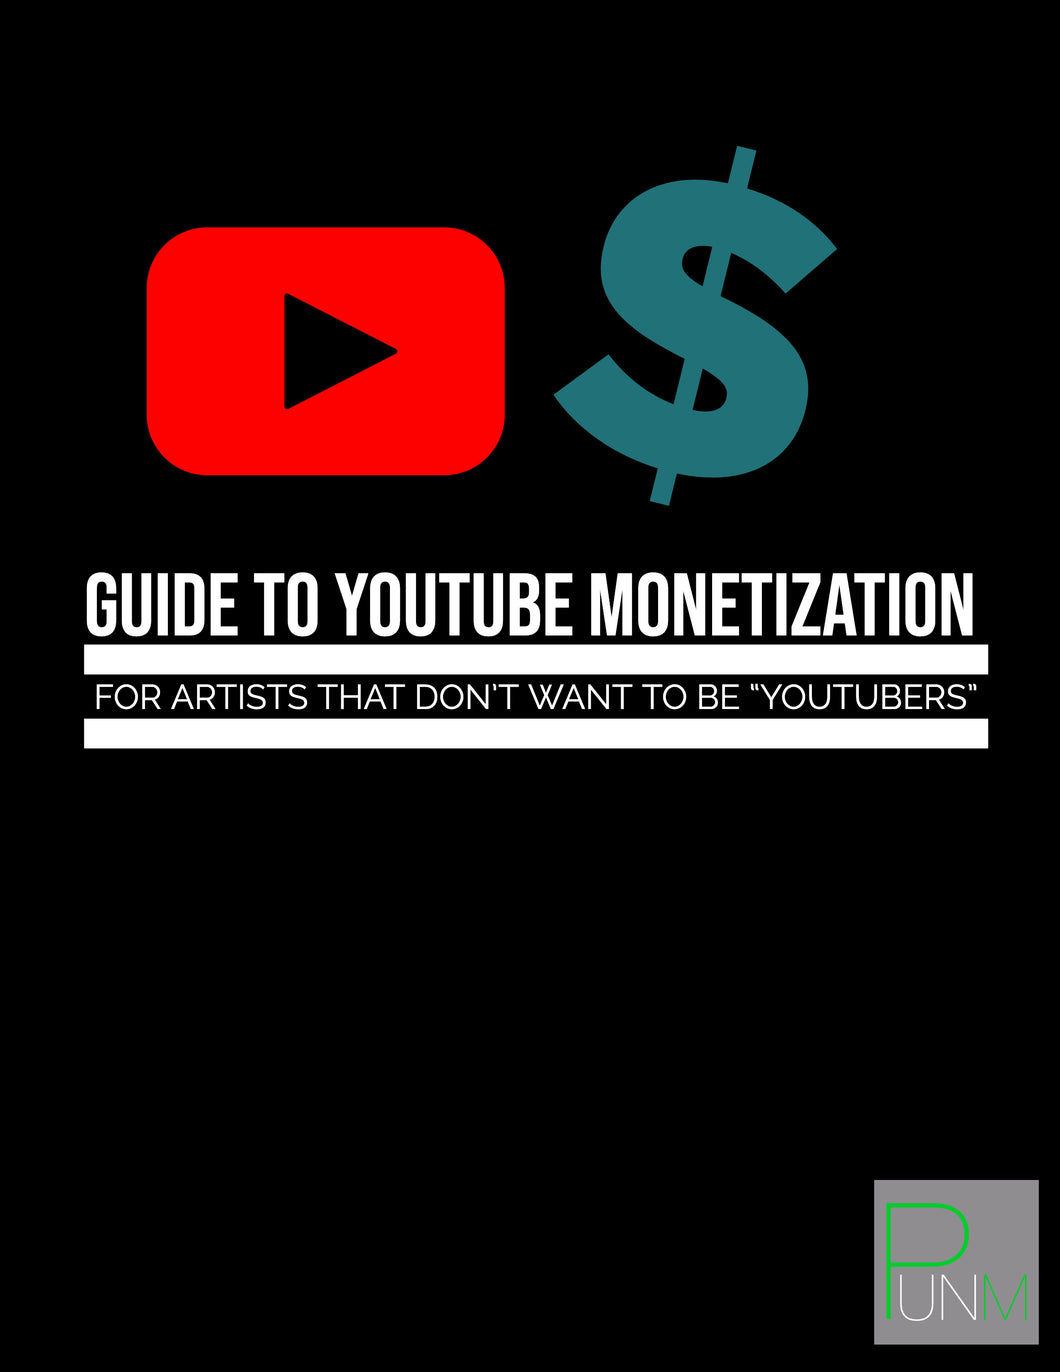 Guide To Youtube Monetization for Artists That Don't Want To Be